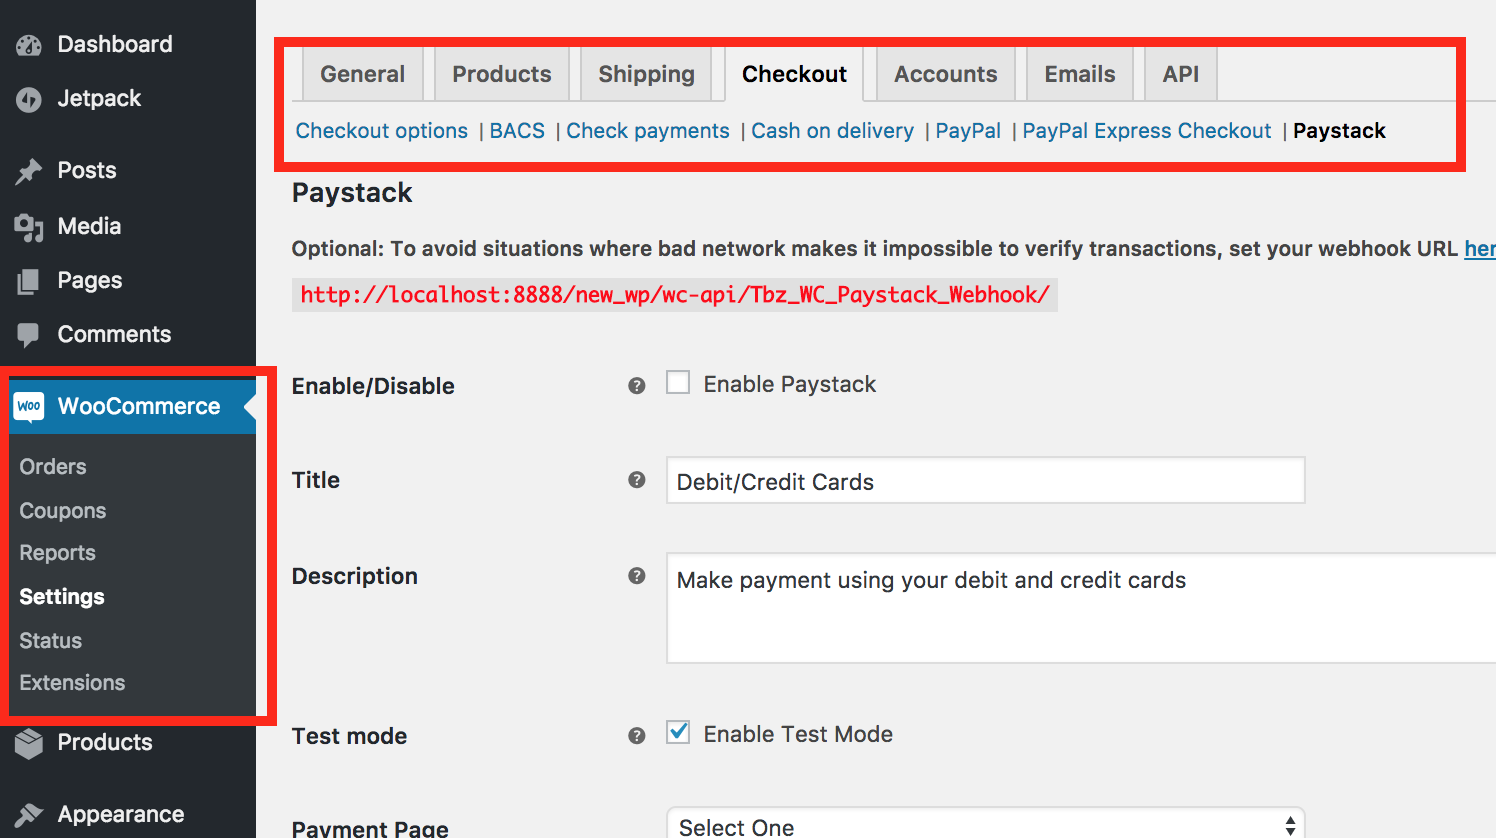 How to set up Paystack on WooCommerce - Paystack Help Desk